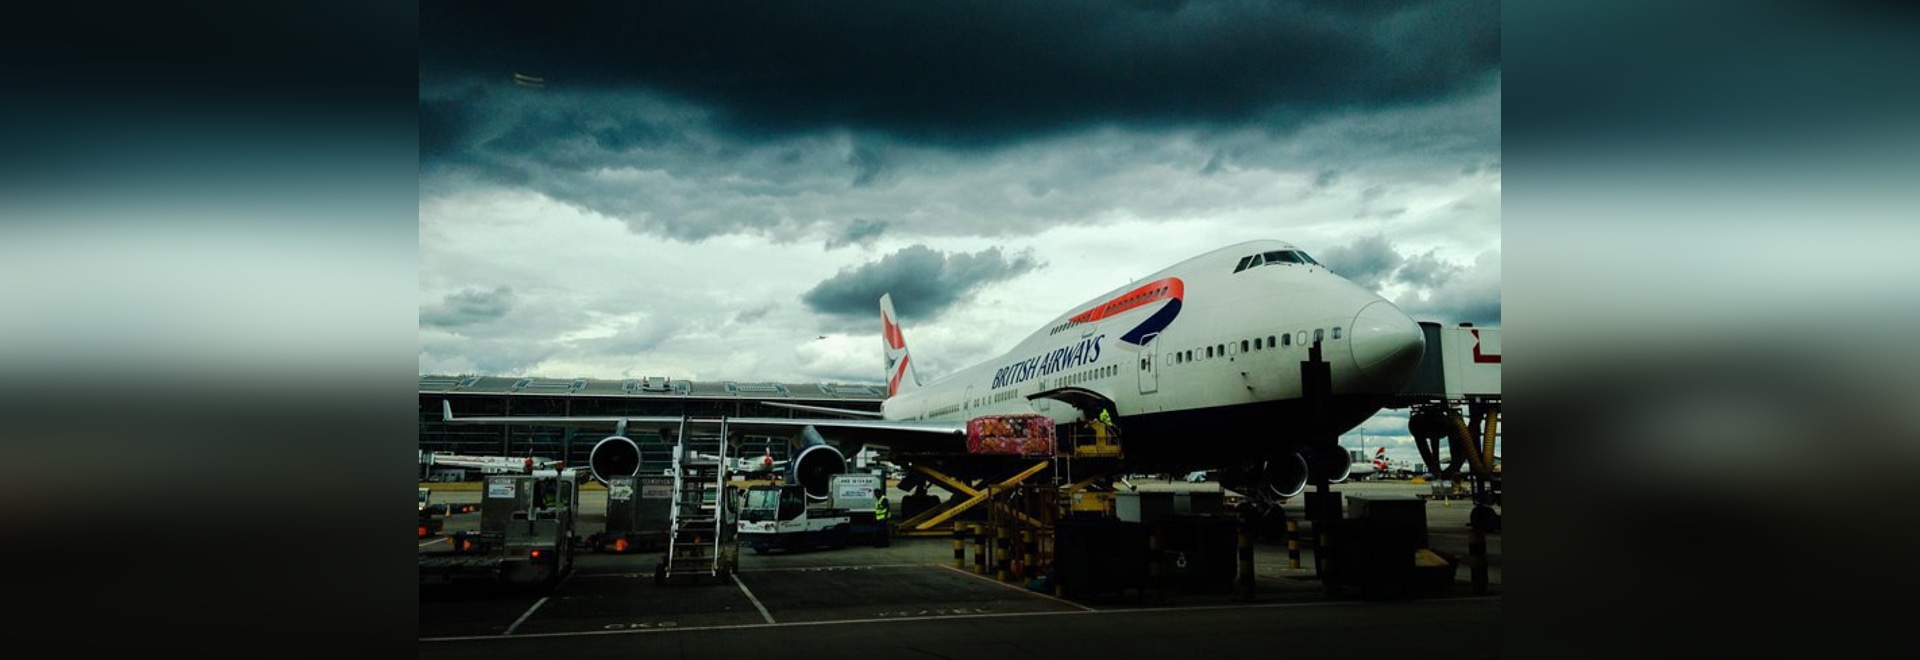 UK to fund projects to strengthen aerospace industry